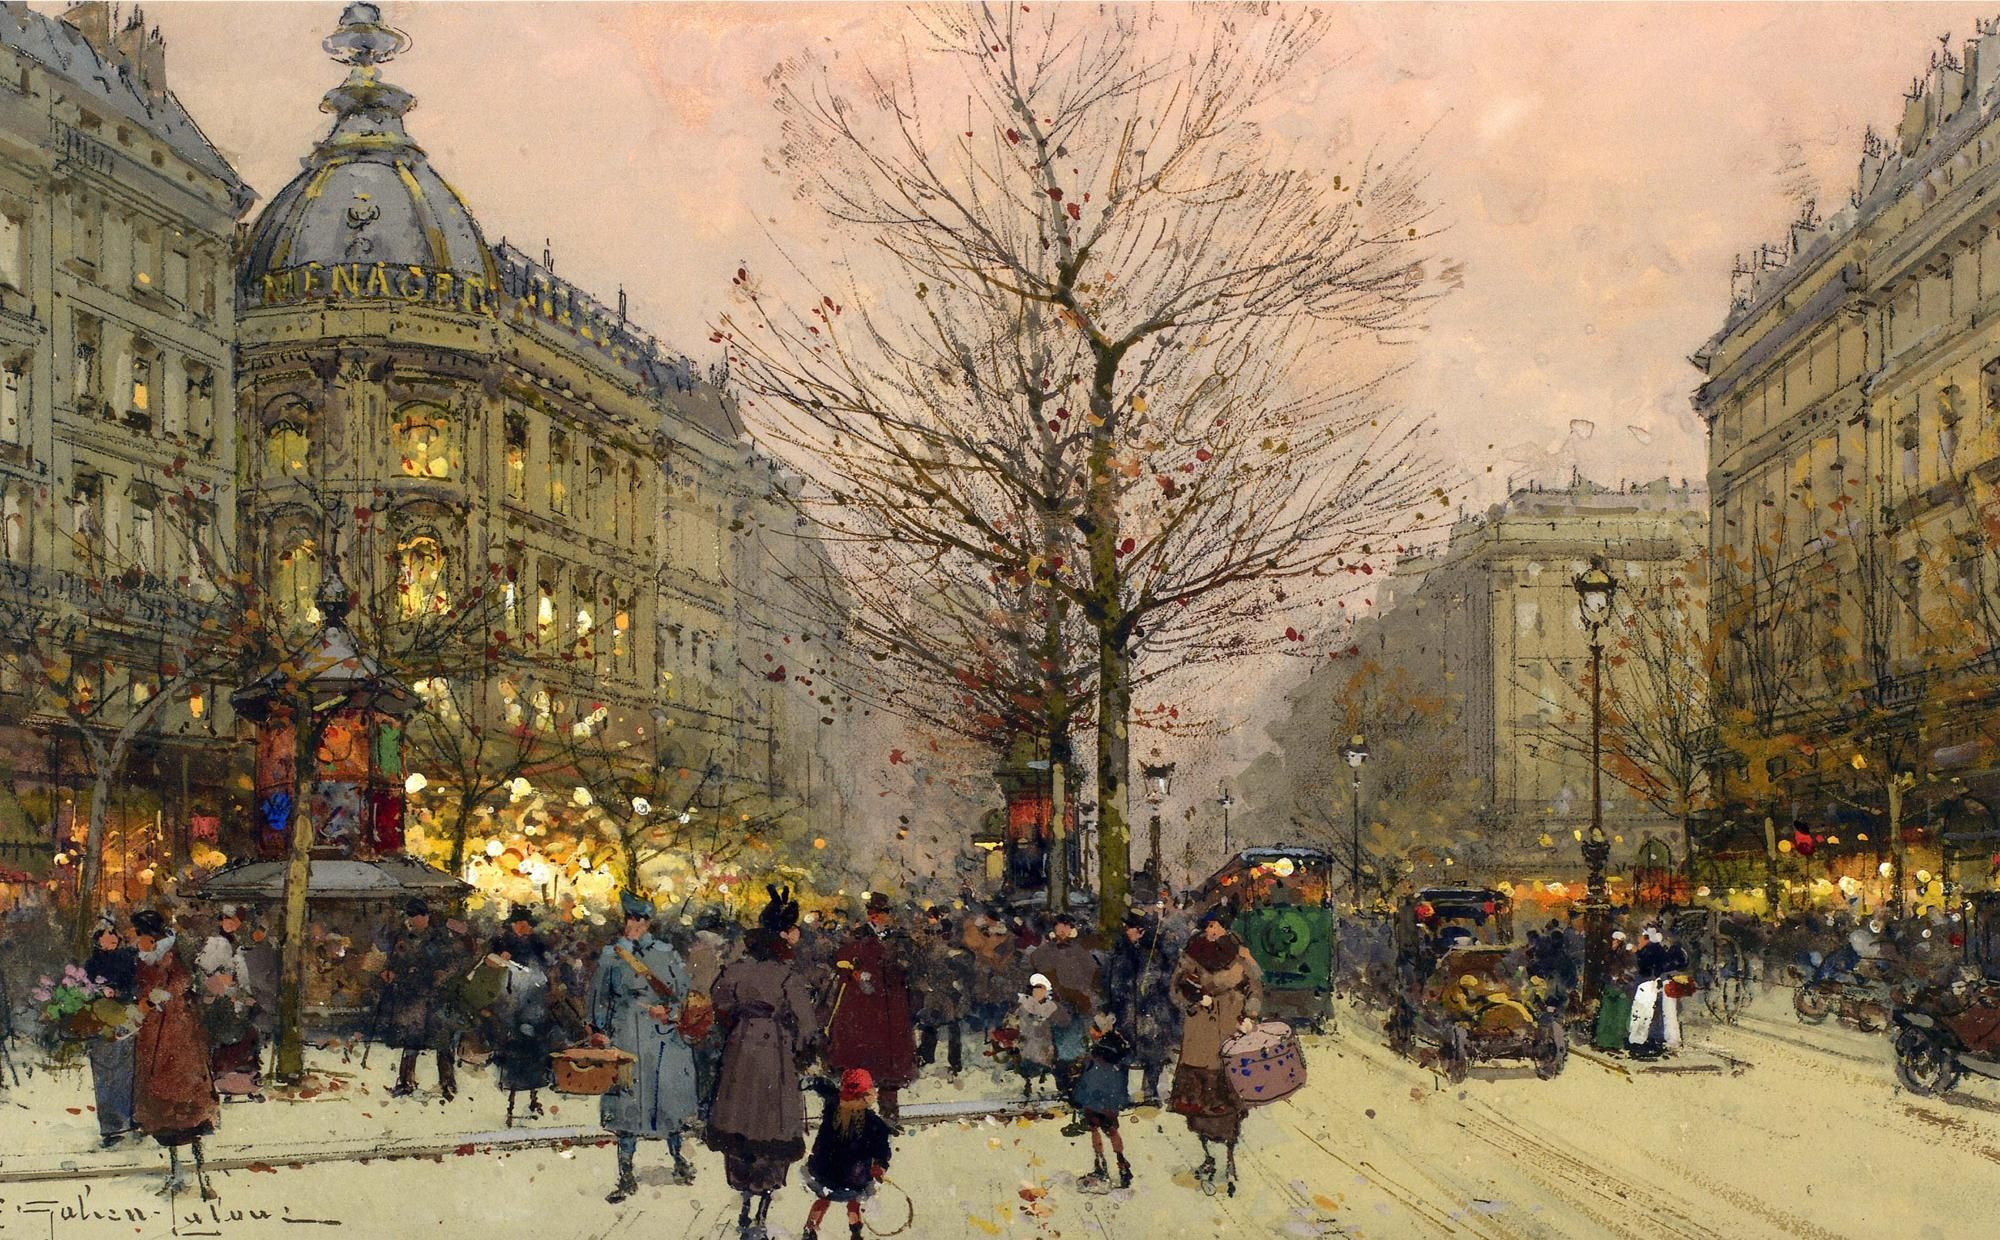 Eugene Galien-Laloue ( 1854 - 1941) - Les Grands Boulevards, Paris